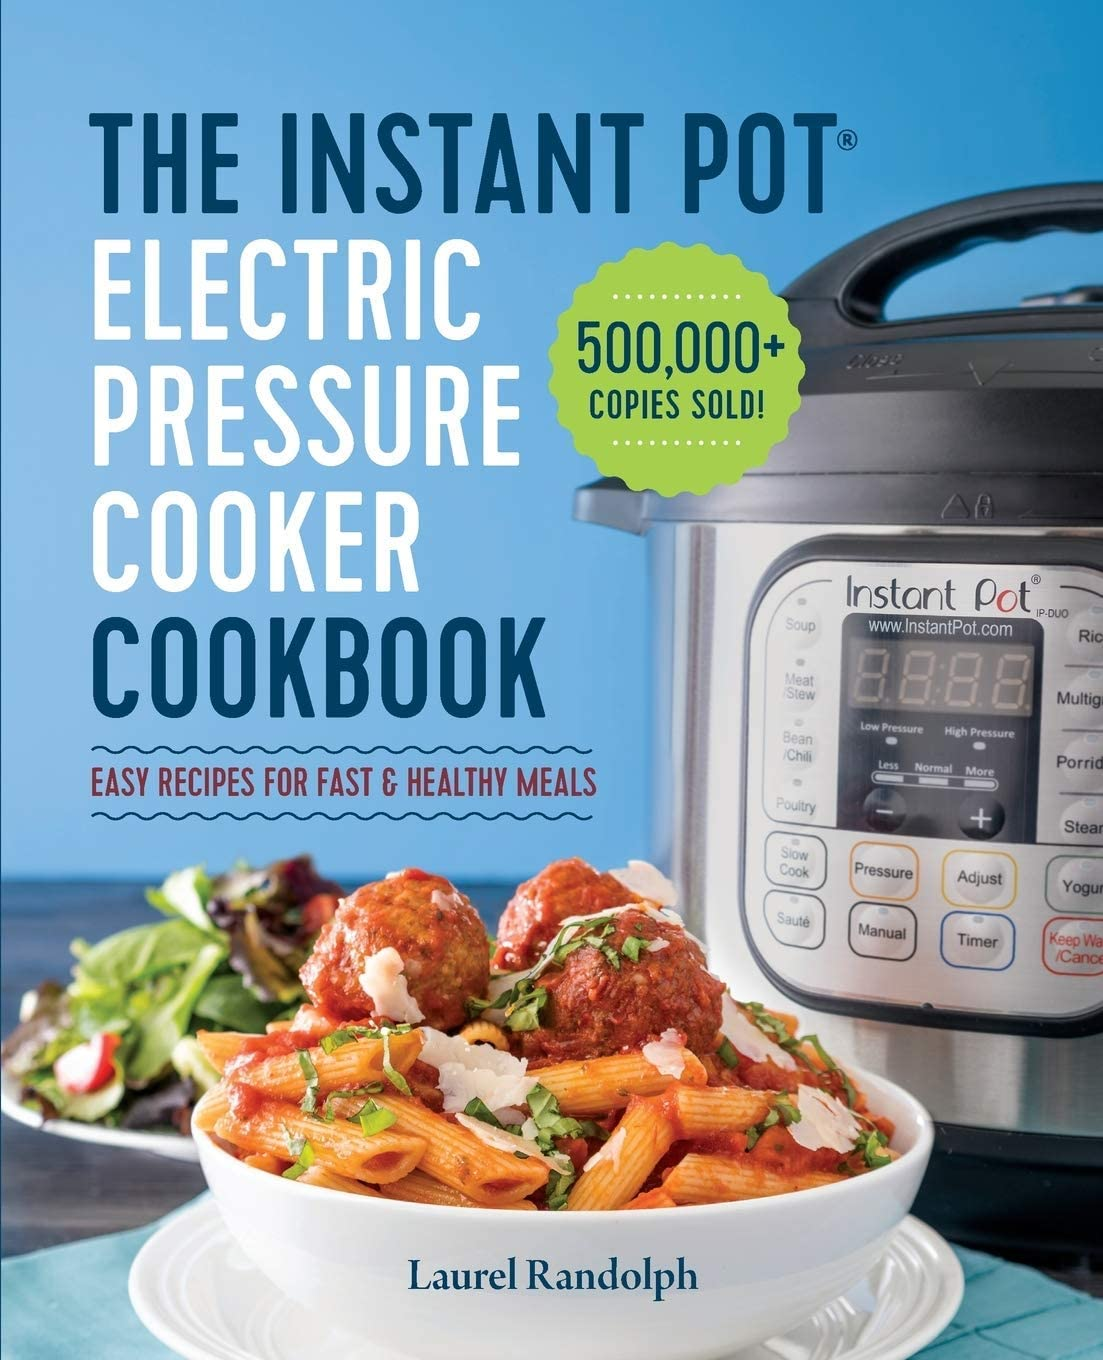 [Laurel Randolph ]-[The Instant Pot Electric Pressure Cooker Cookbook]-[Paperback]